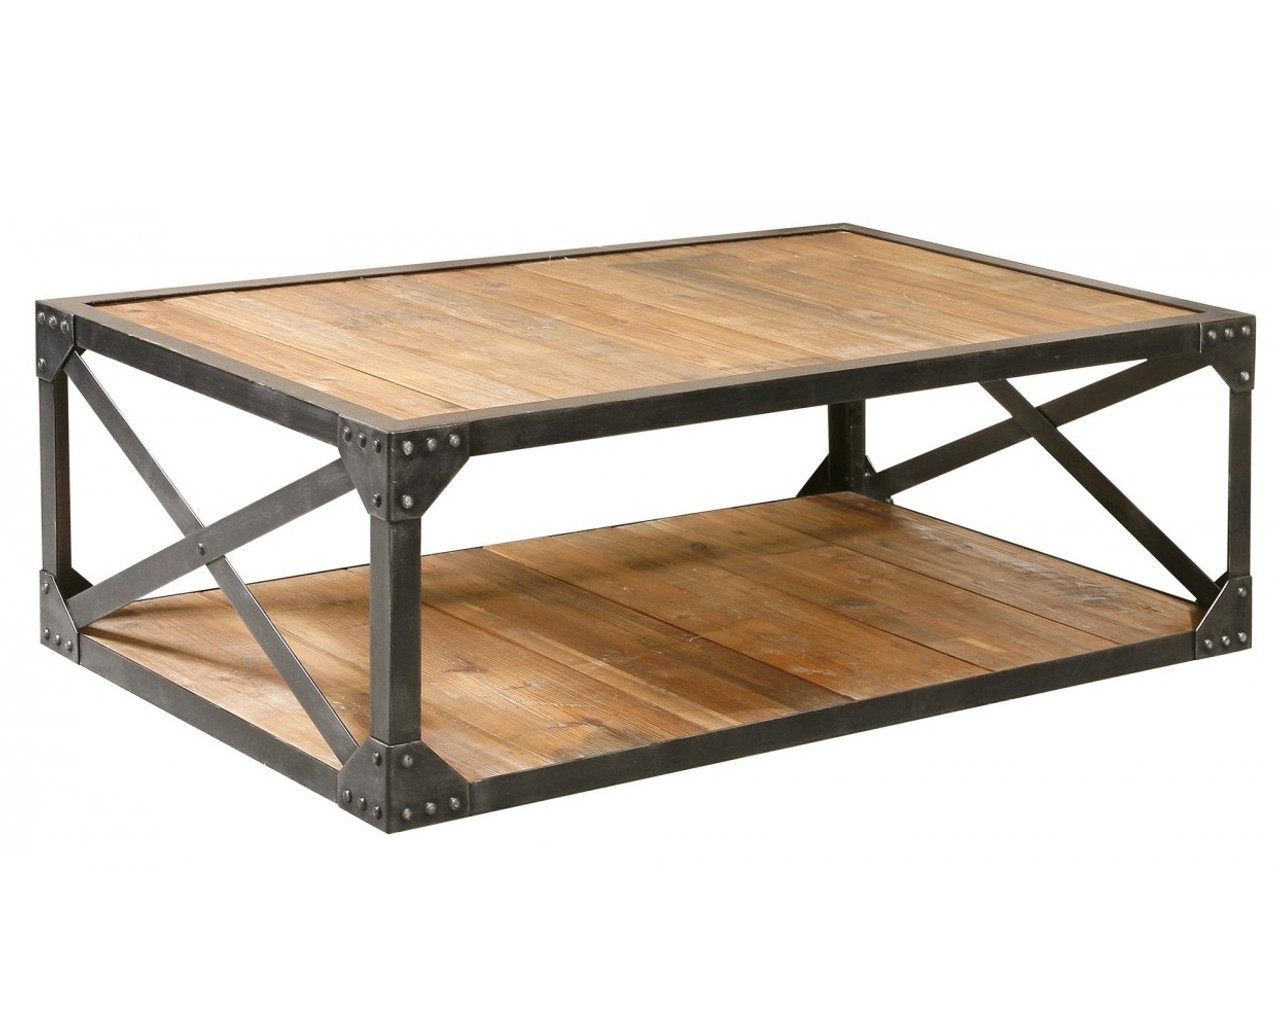 Industrial metal and wood coffee 51 table rectangular cocktail industrial metal and wood coffee table geotapseo Image collections